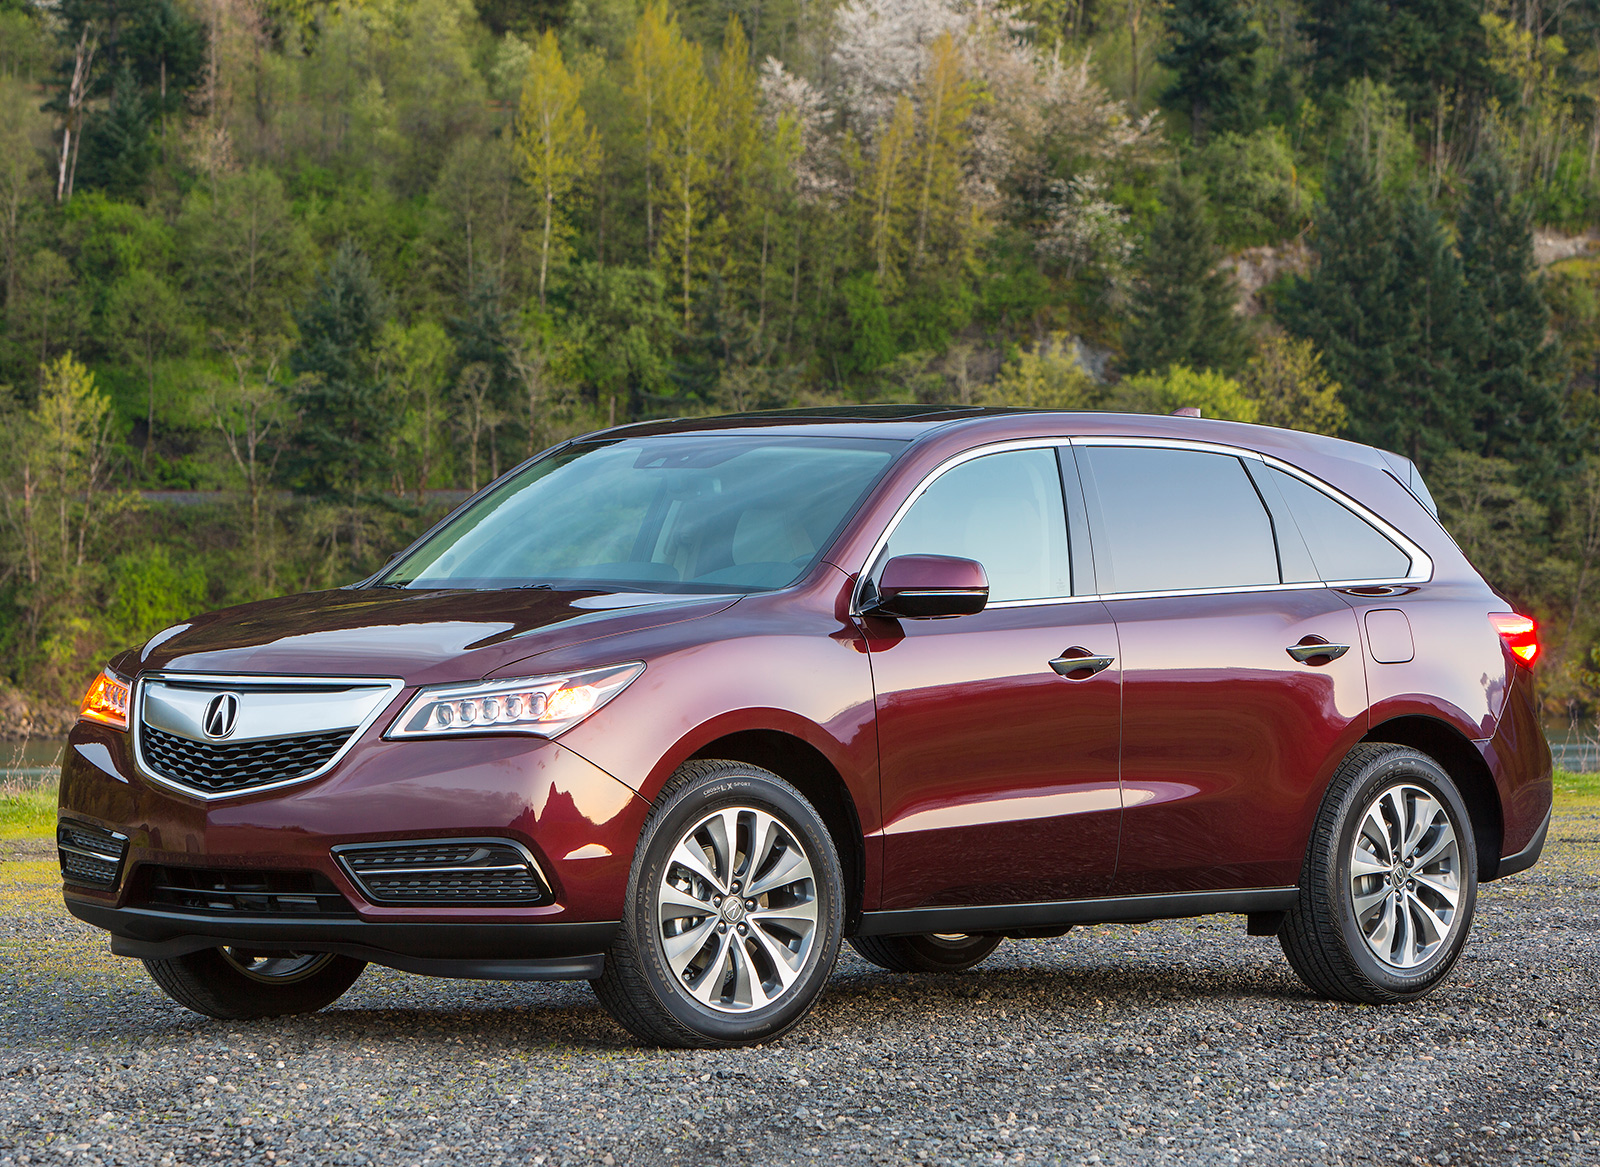 acura mdx 2016 vs 2015 consumer reports. Black Bedroom Furniture Sets. Home Design Ideas